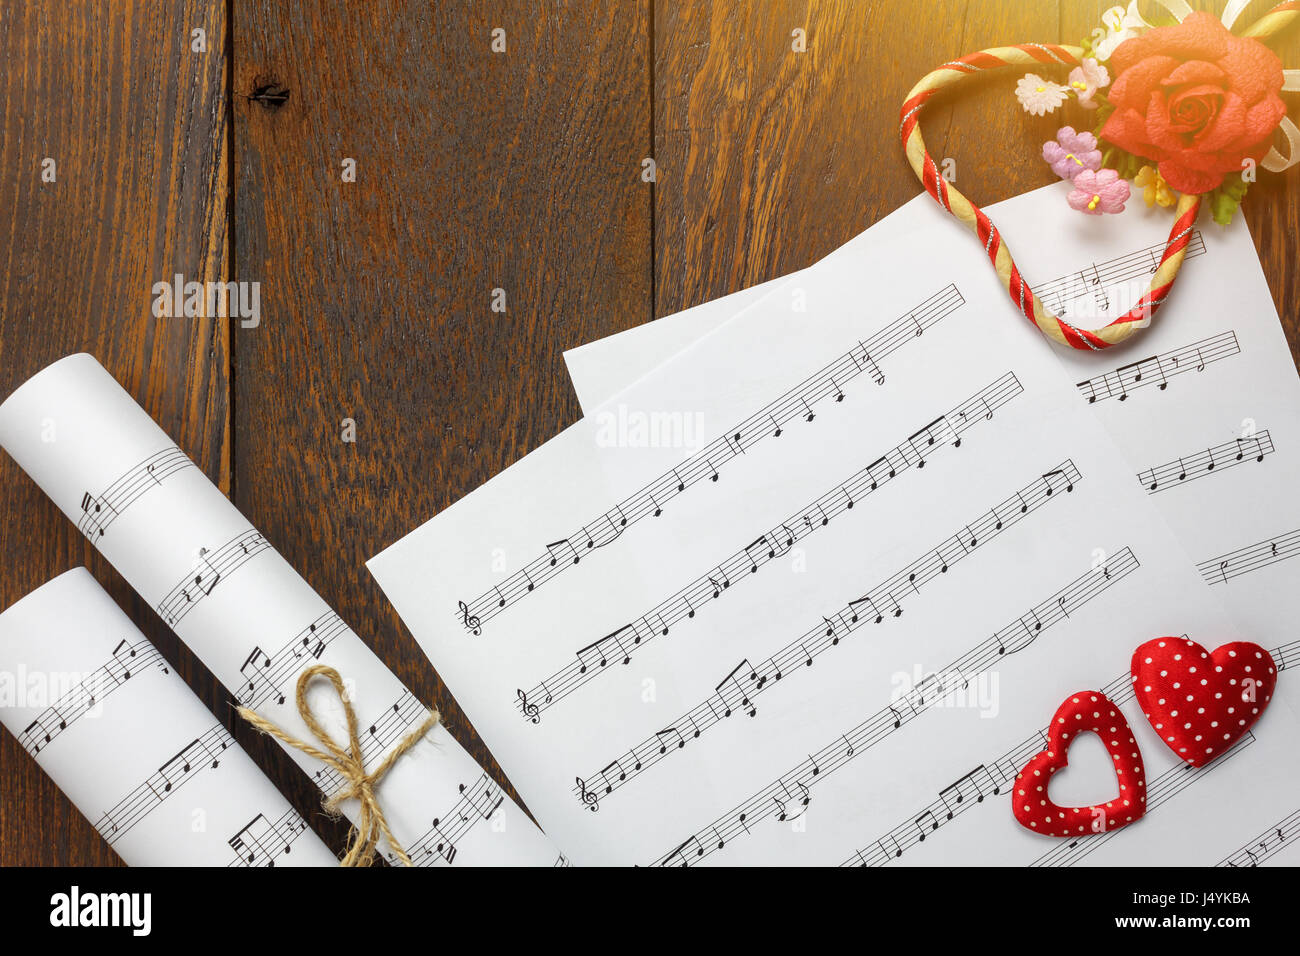 Musical note flower stock photos musical note flower stock images top view valentines day love song music background and decorationsheart shapemusic note mightylinksfo